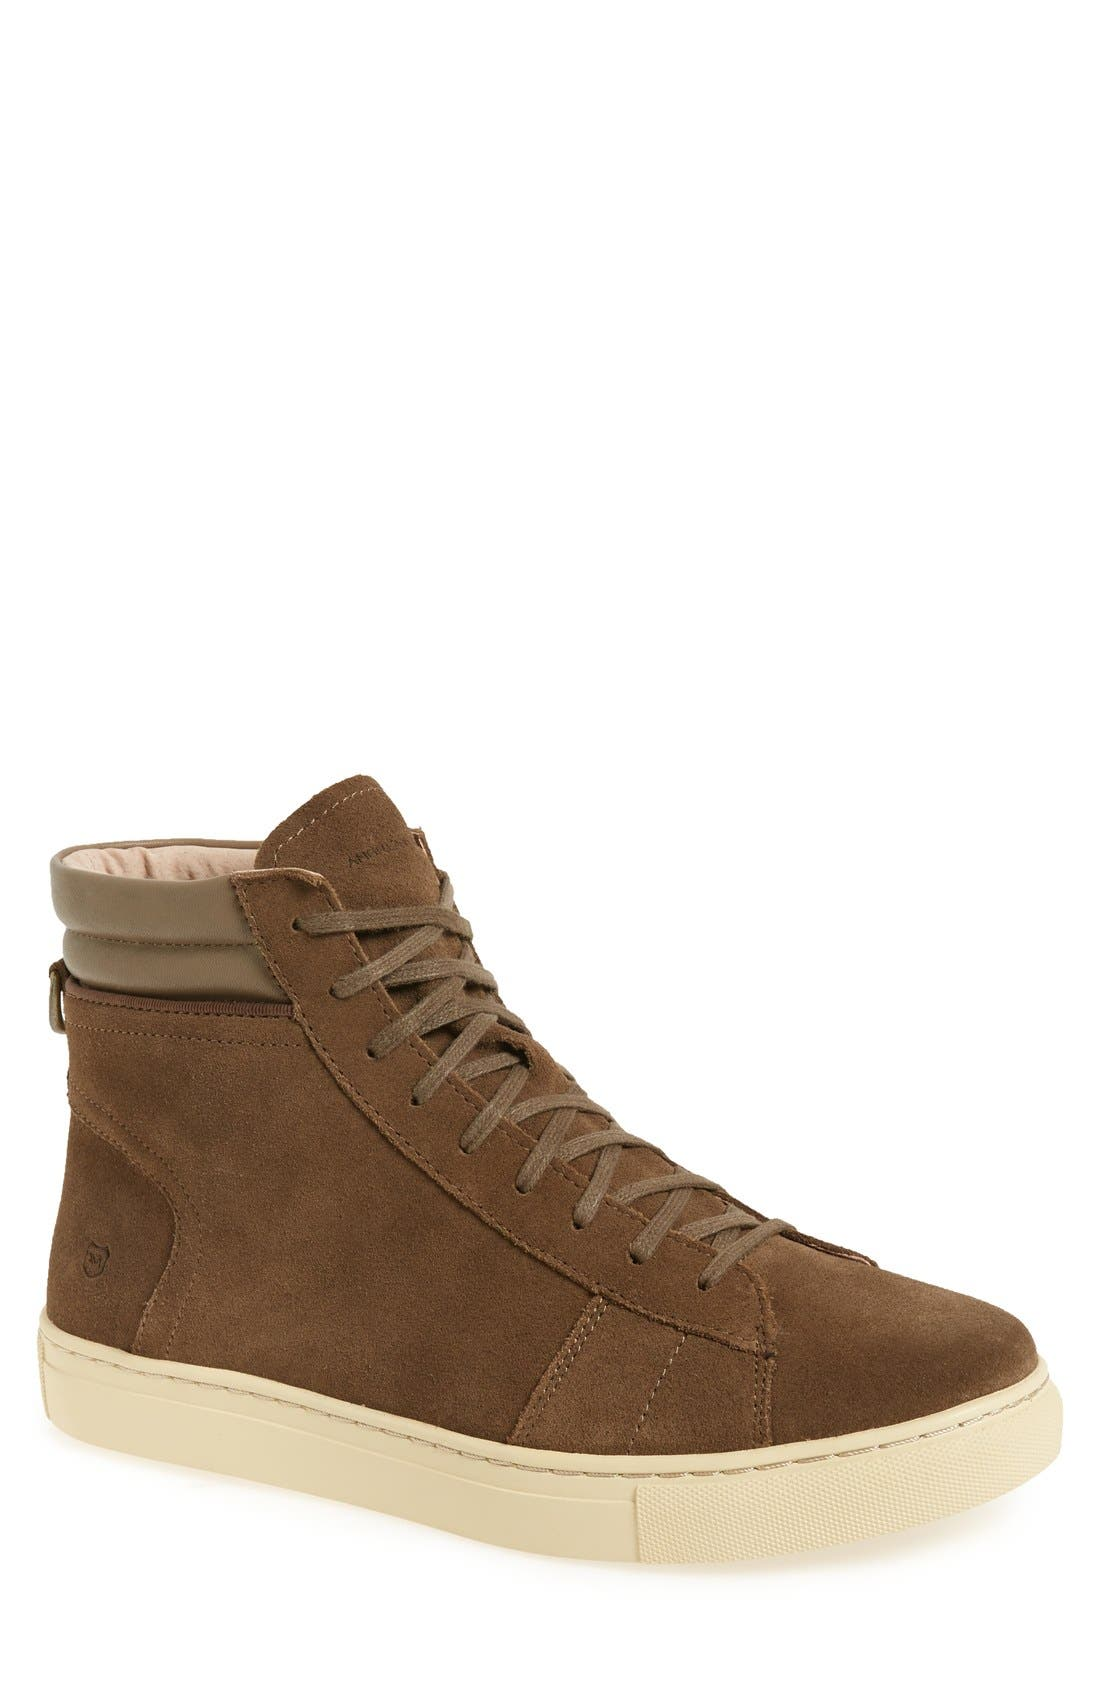 Main Image - Andrew Marc 'Remsen' High Top Sneaker (Men)